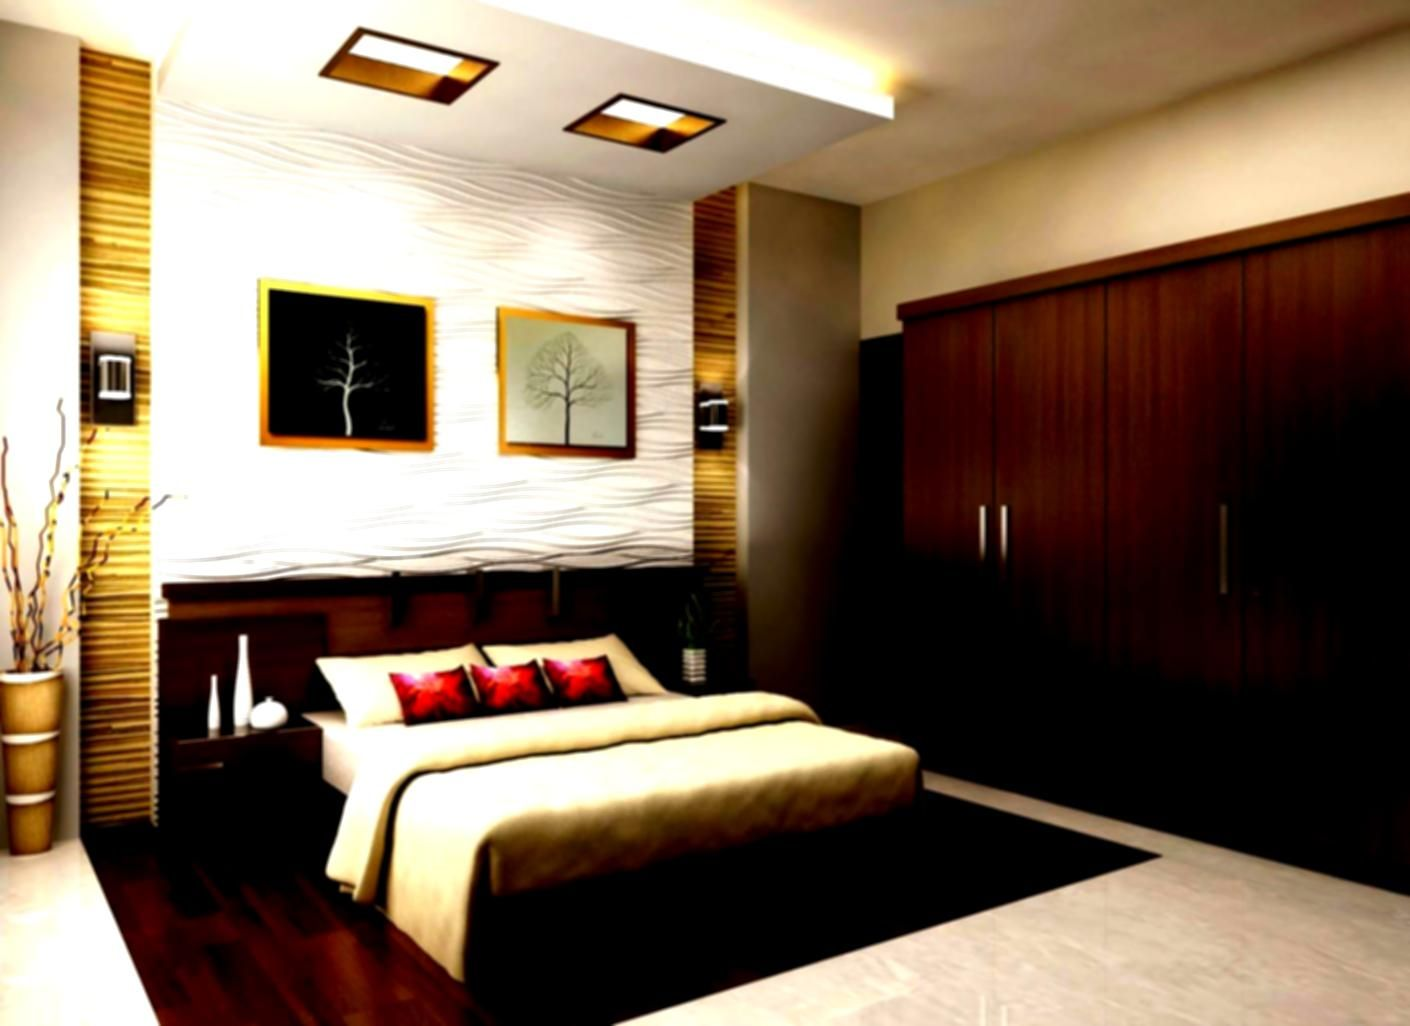 Master Bedroom Interior Masterbedroom Bedroomideas Bedroomdesign Master Bedroom Interior Small House Bedroom Indian Bedroom Design